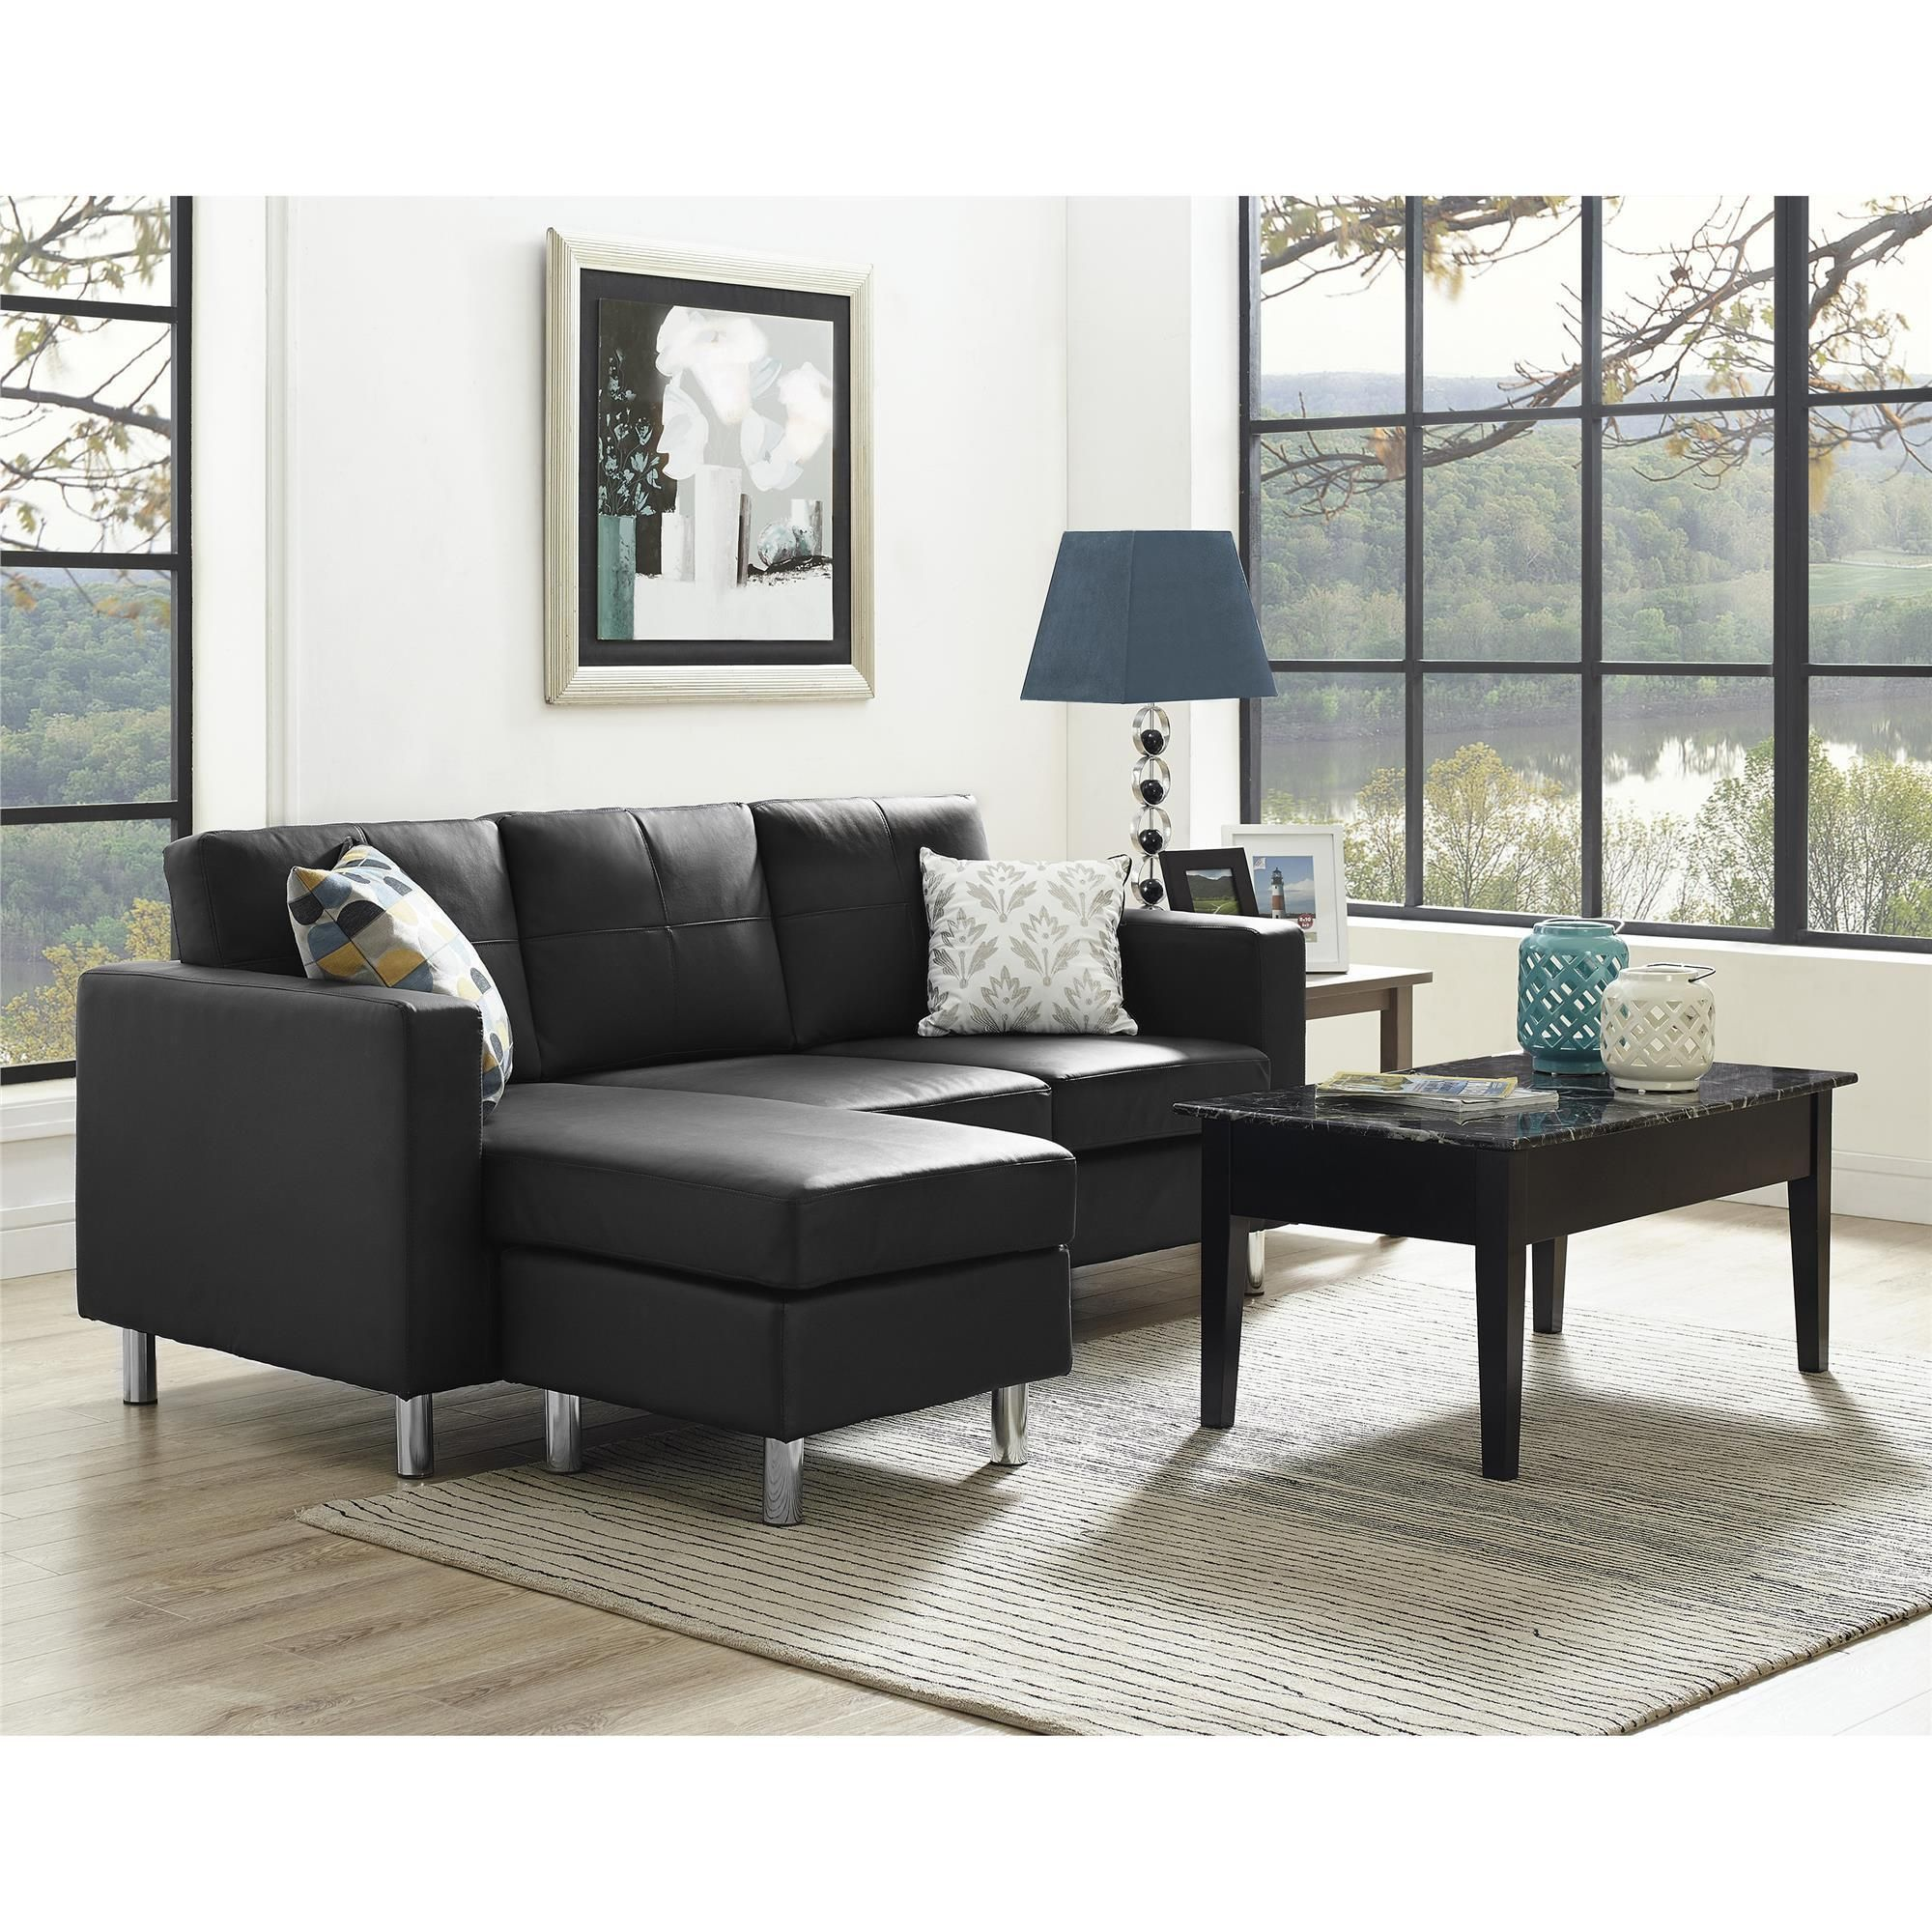 living chaise ideas incredible sleeper furniture remodel with livings leather sofa fancy sectional room